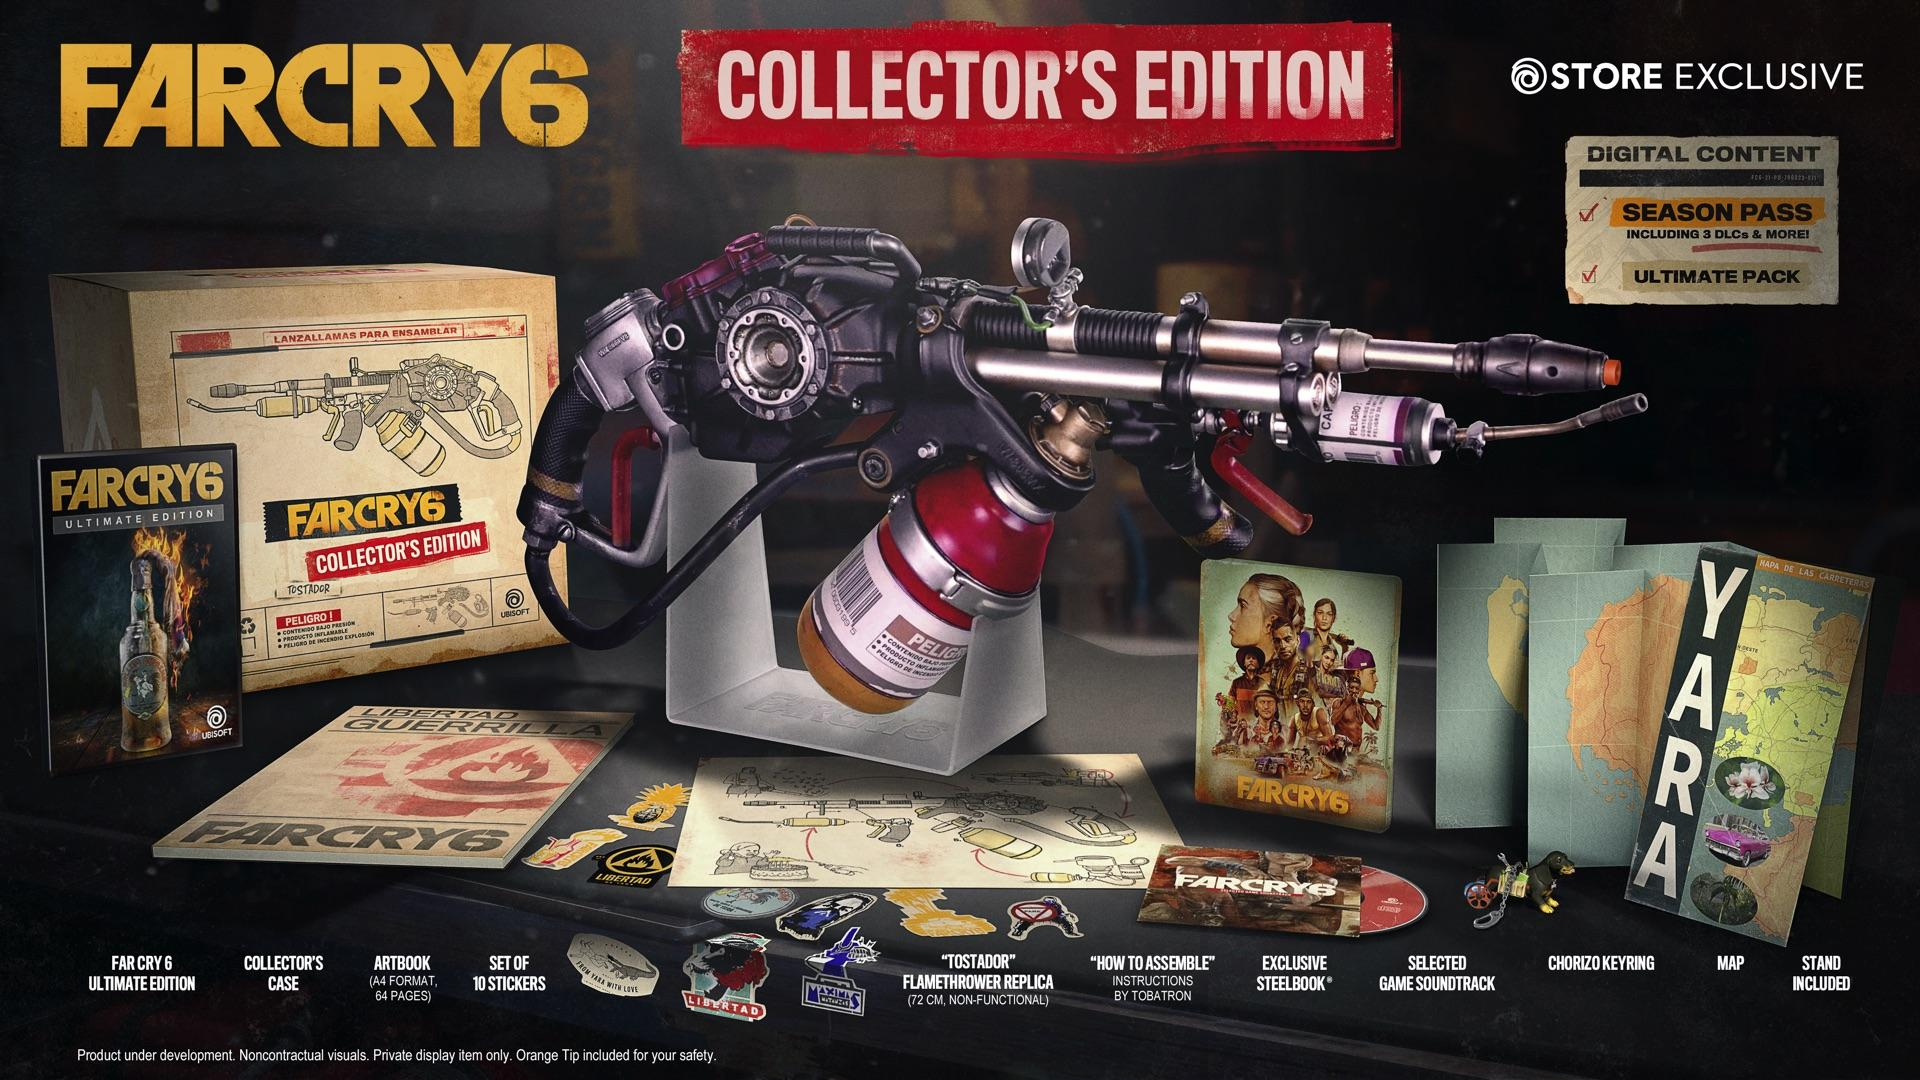 Far Cry 6 Collector S Edition Comes With A Flamethrower Xbox One Xbox 360 News At Xboxachievements Com